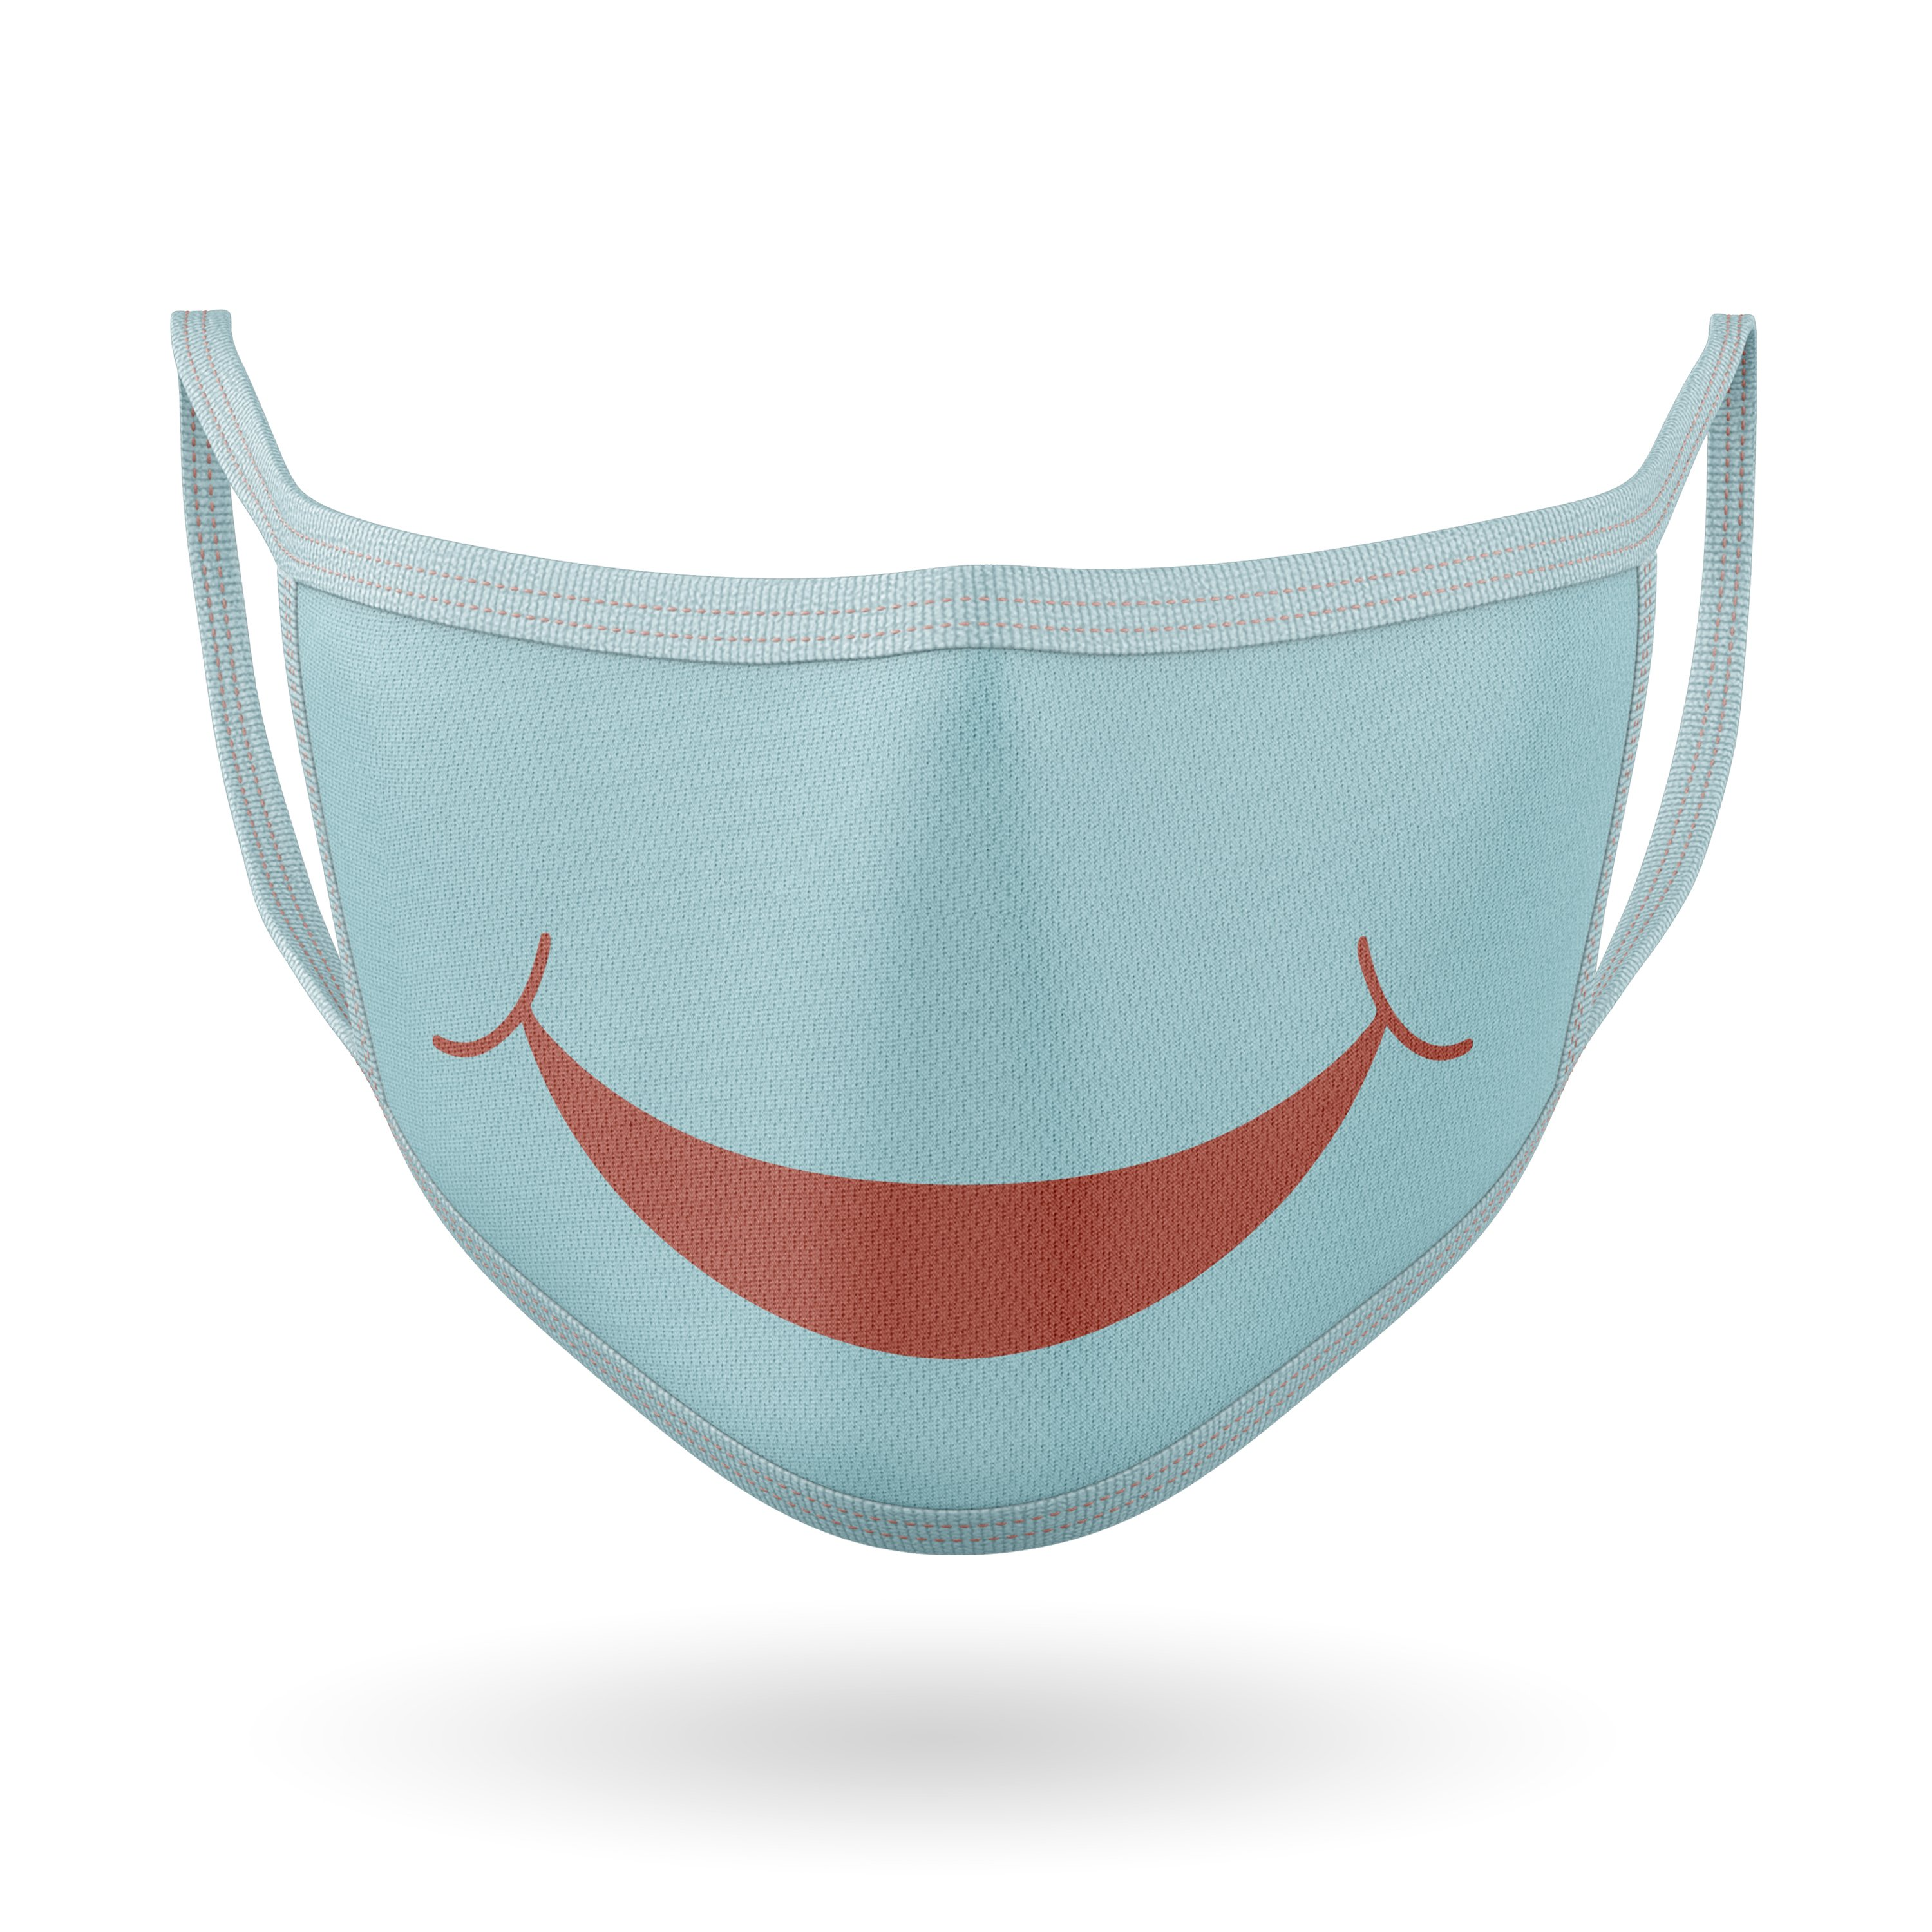 10 Funny Faces for Masks - SVG Cut Files example image 5